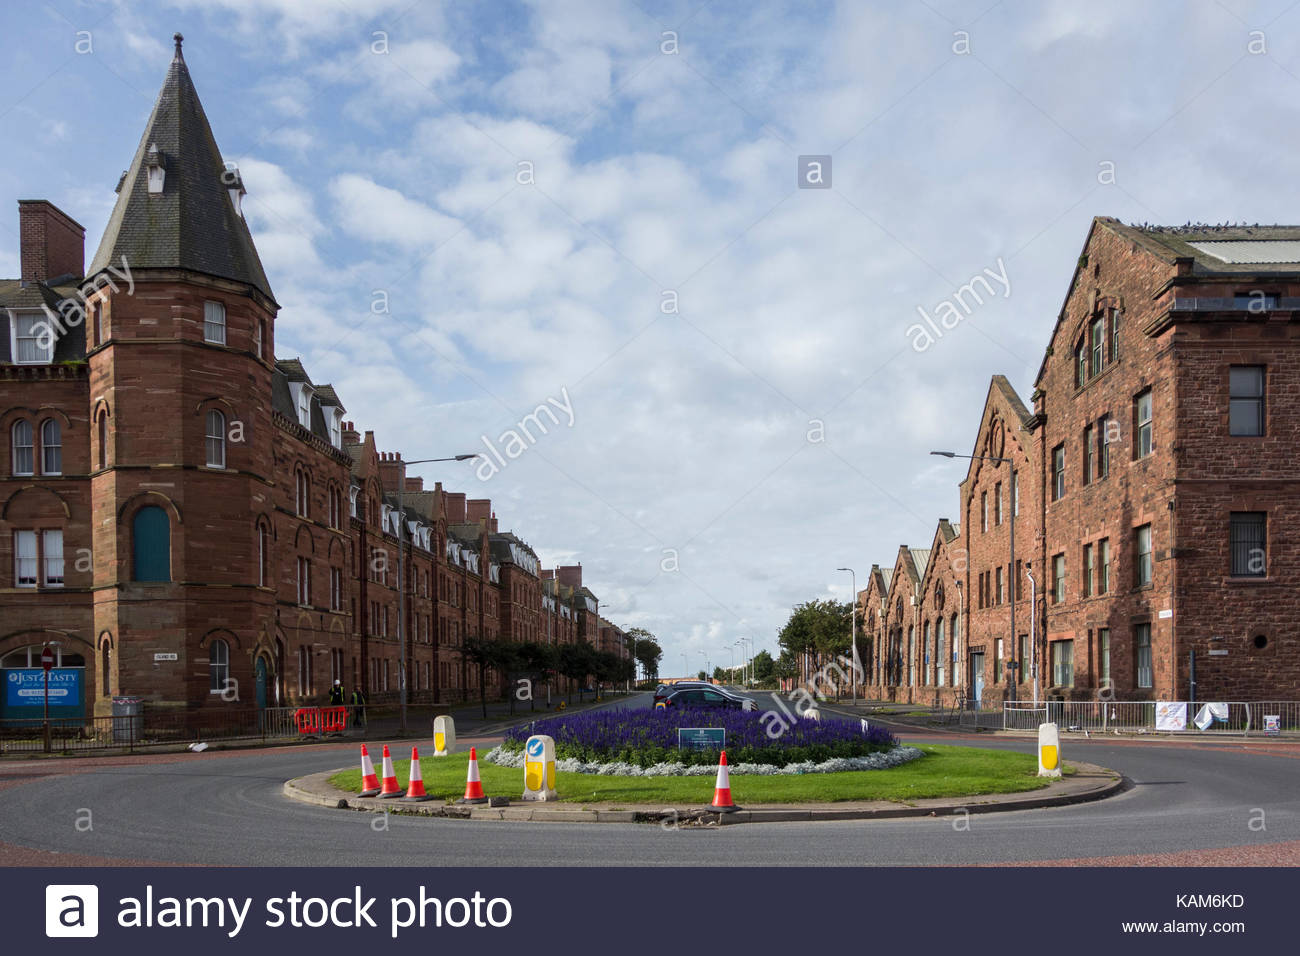 Shipbuilding works on Michaelson Road in Barrow in Furness - Stock Image